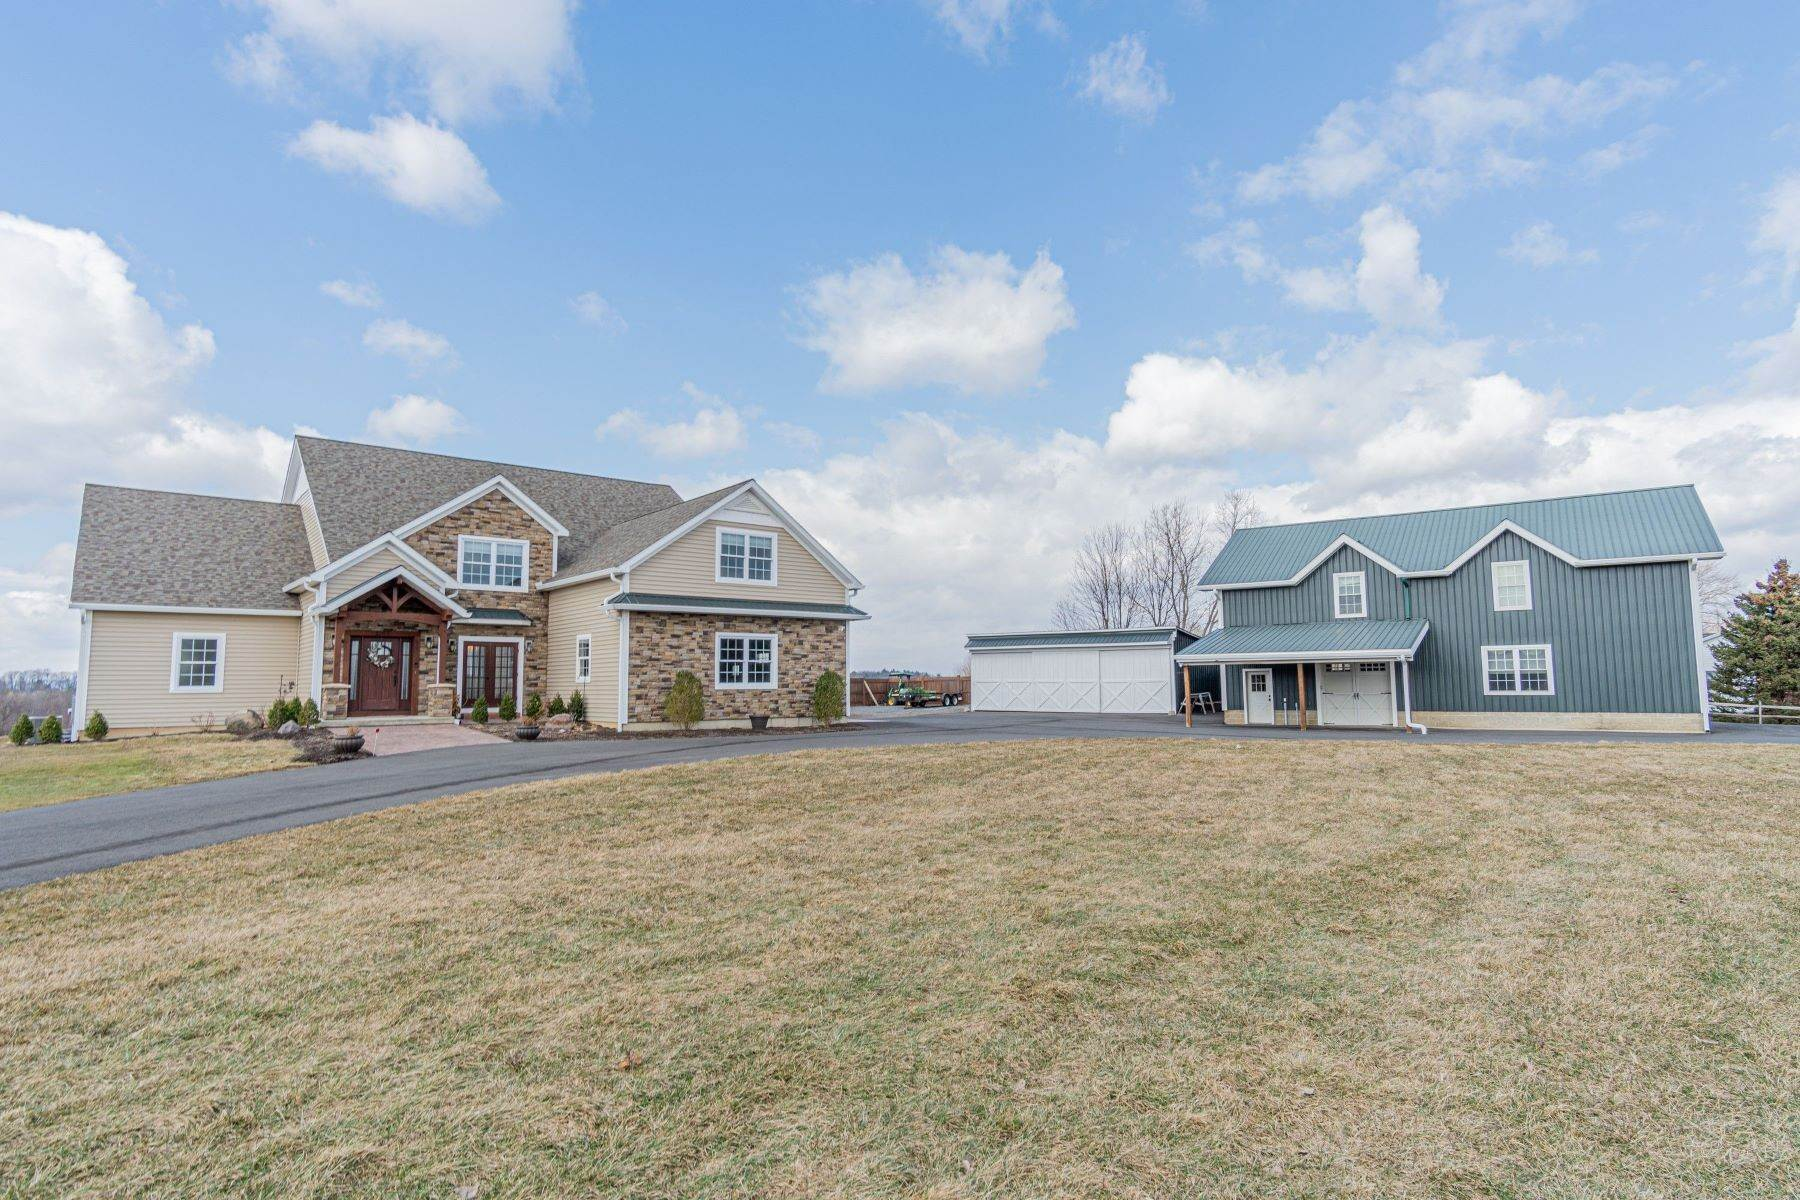 43. Single Family Homes for Sale at 1059 County Rt 70, Saratoga Tov, Ny, 12170 1059 County Rt 70 Stillwater, New York 12170 United States